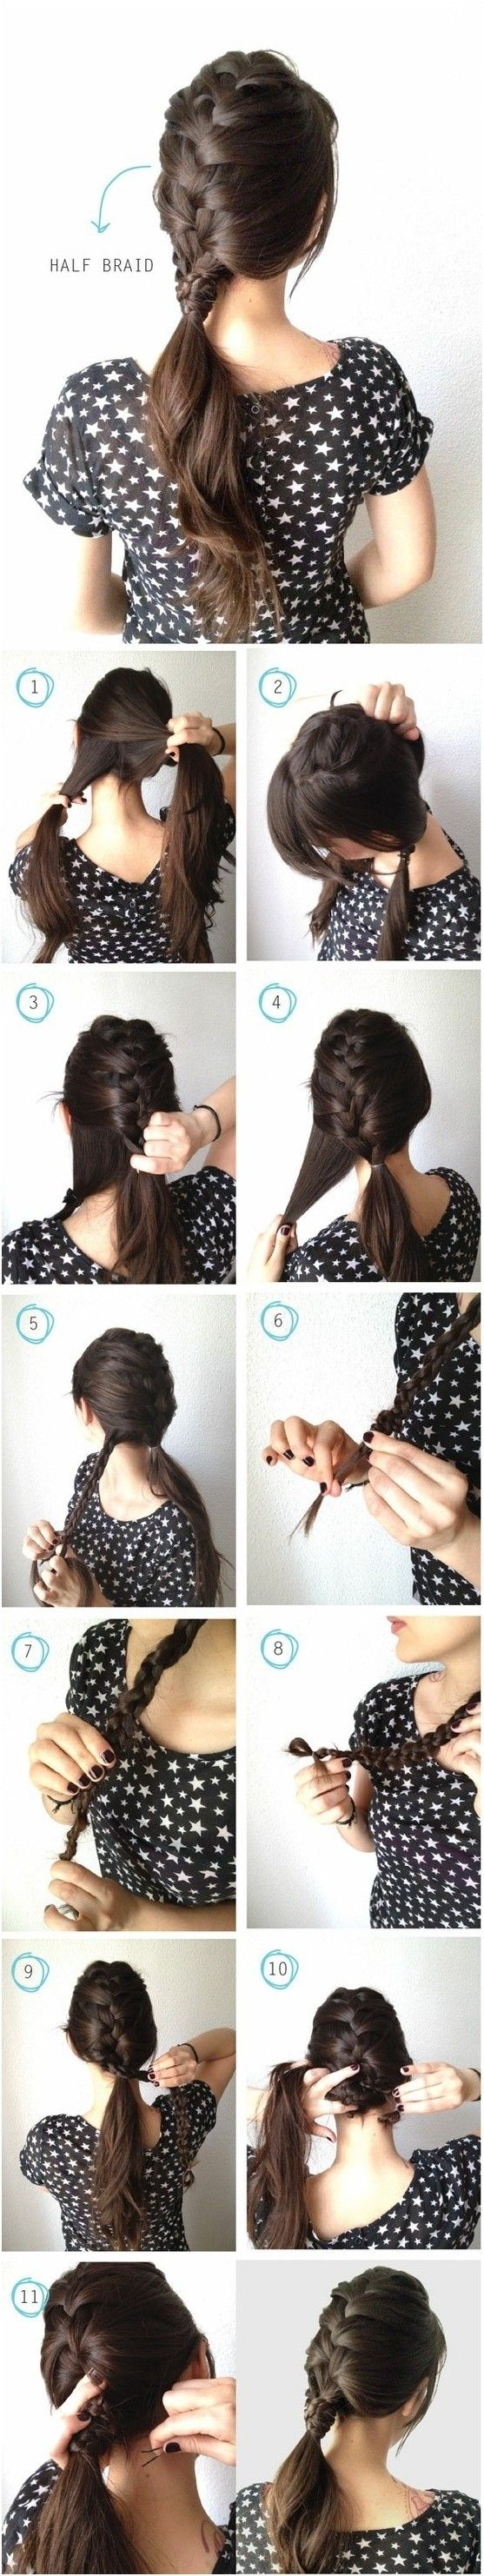 21 Braided Hair Tutorials   Gorgeous Hairstyles To Try by Makeup Tutorials at ma...